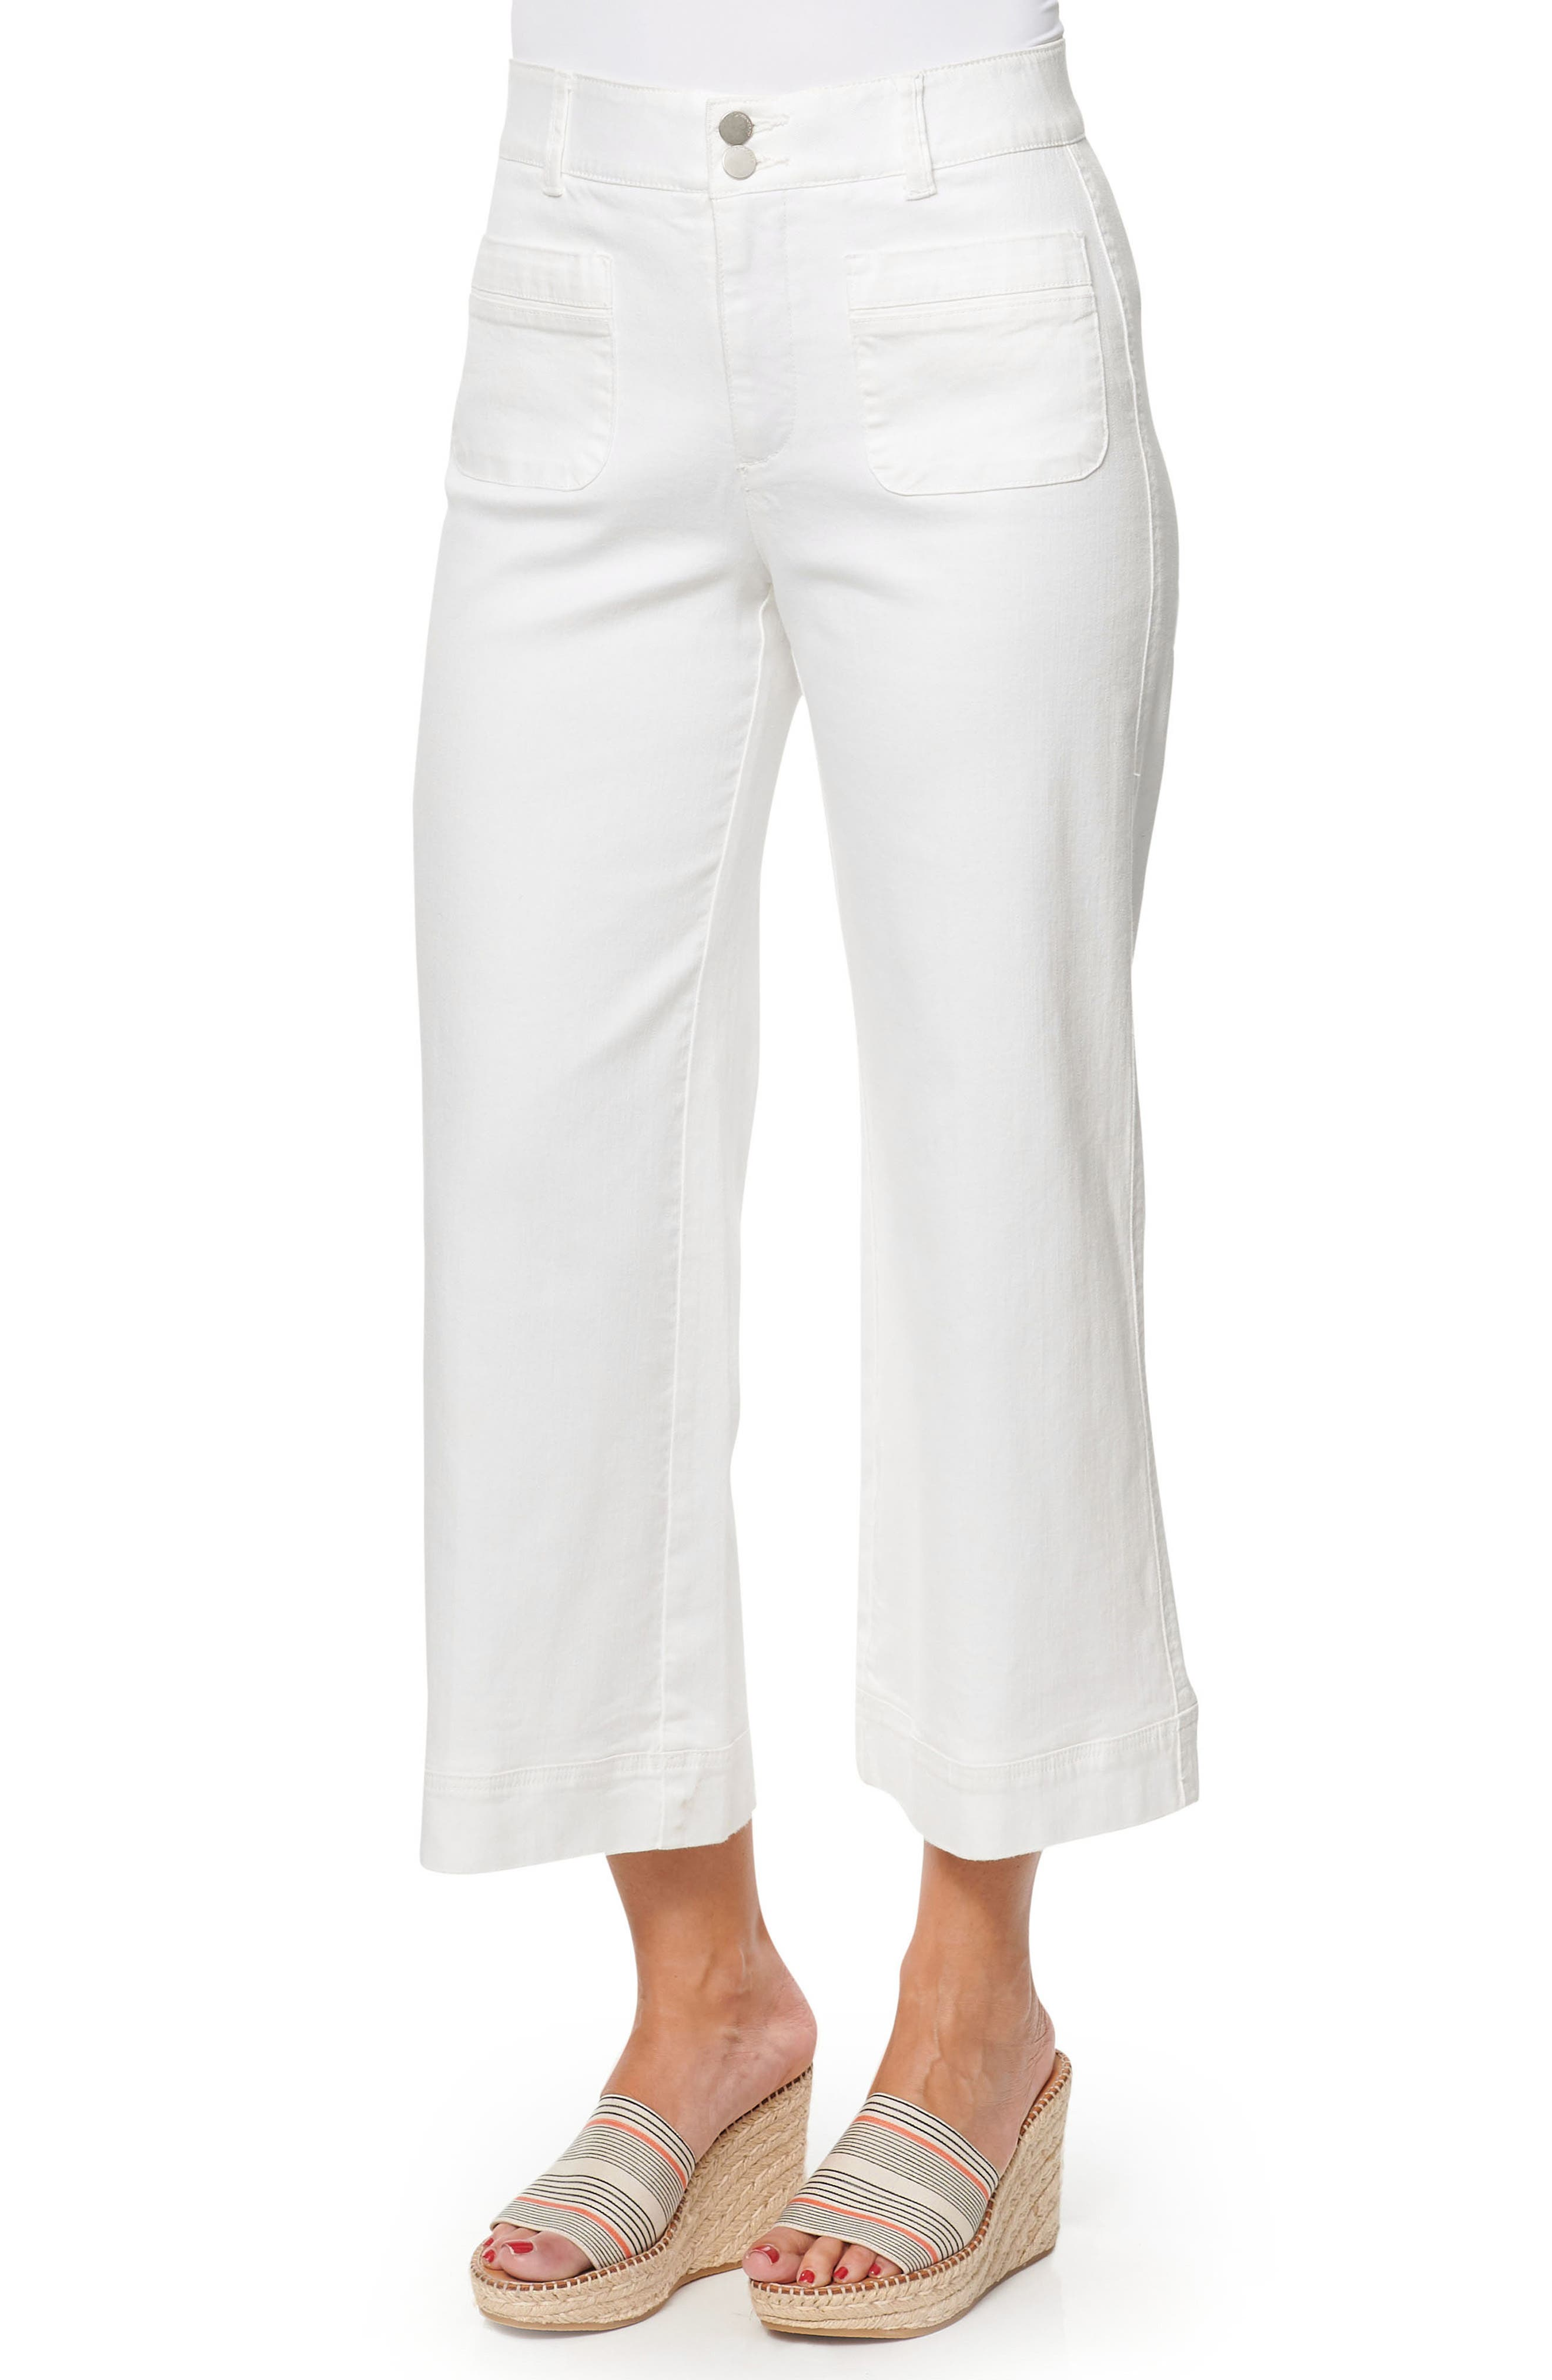 A high waistband accentuates the wide, flared legs of versatile white pants updated in a cropped length with front patch pockets. Style Name: Wit & Wisdom Ab-Solution High Waist Crop Wide Leg Jeans (Nordstrom Exclusive). Style Number: 6012656. Available in stores.